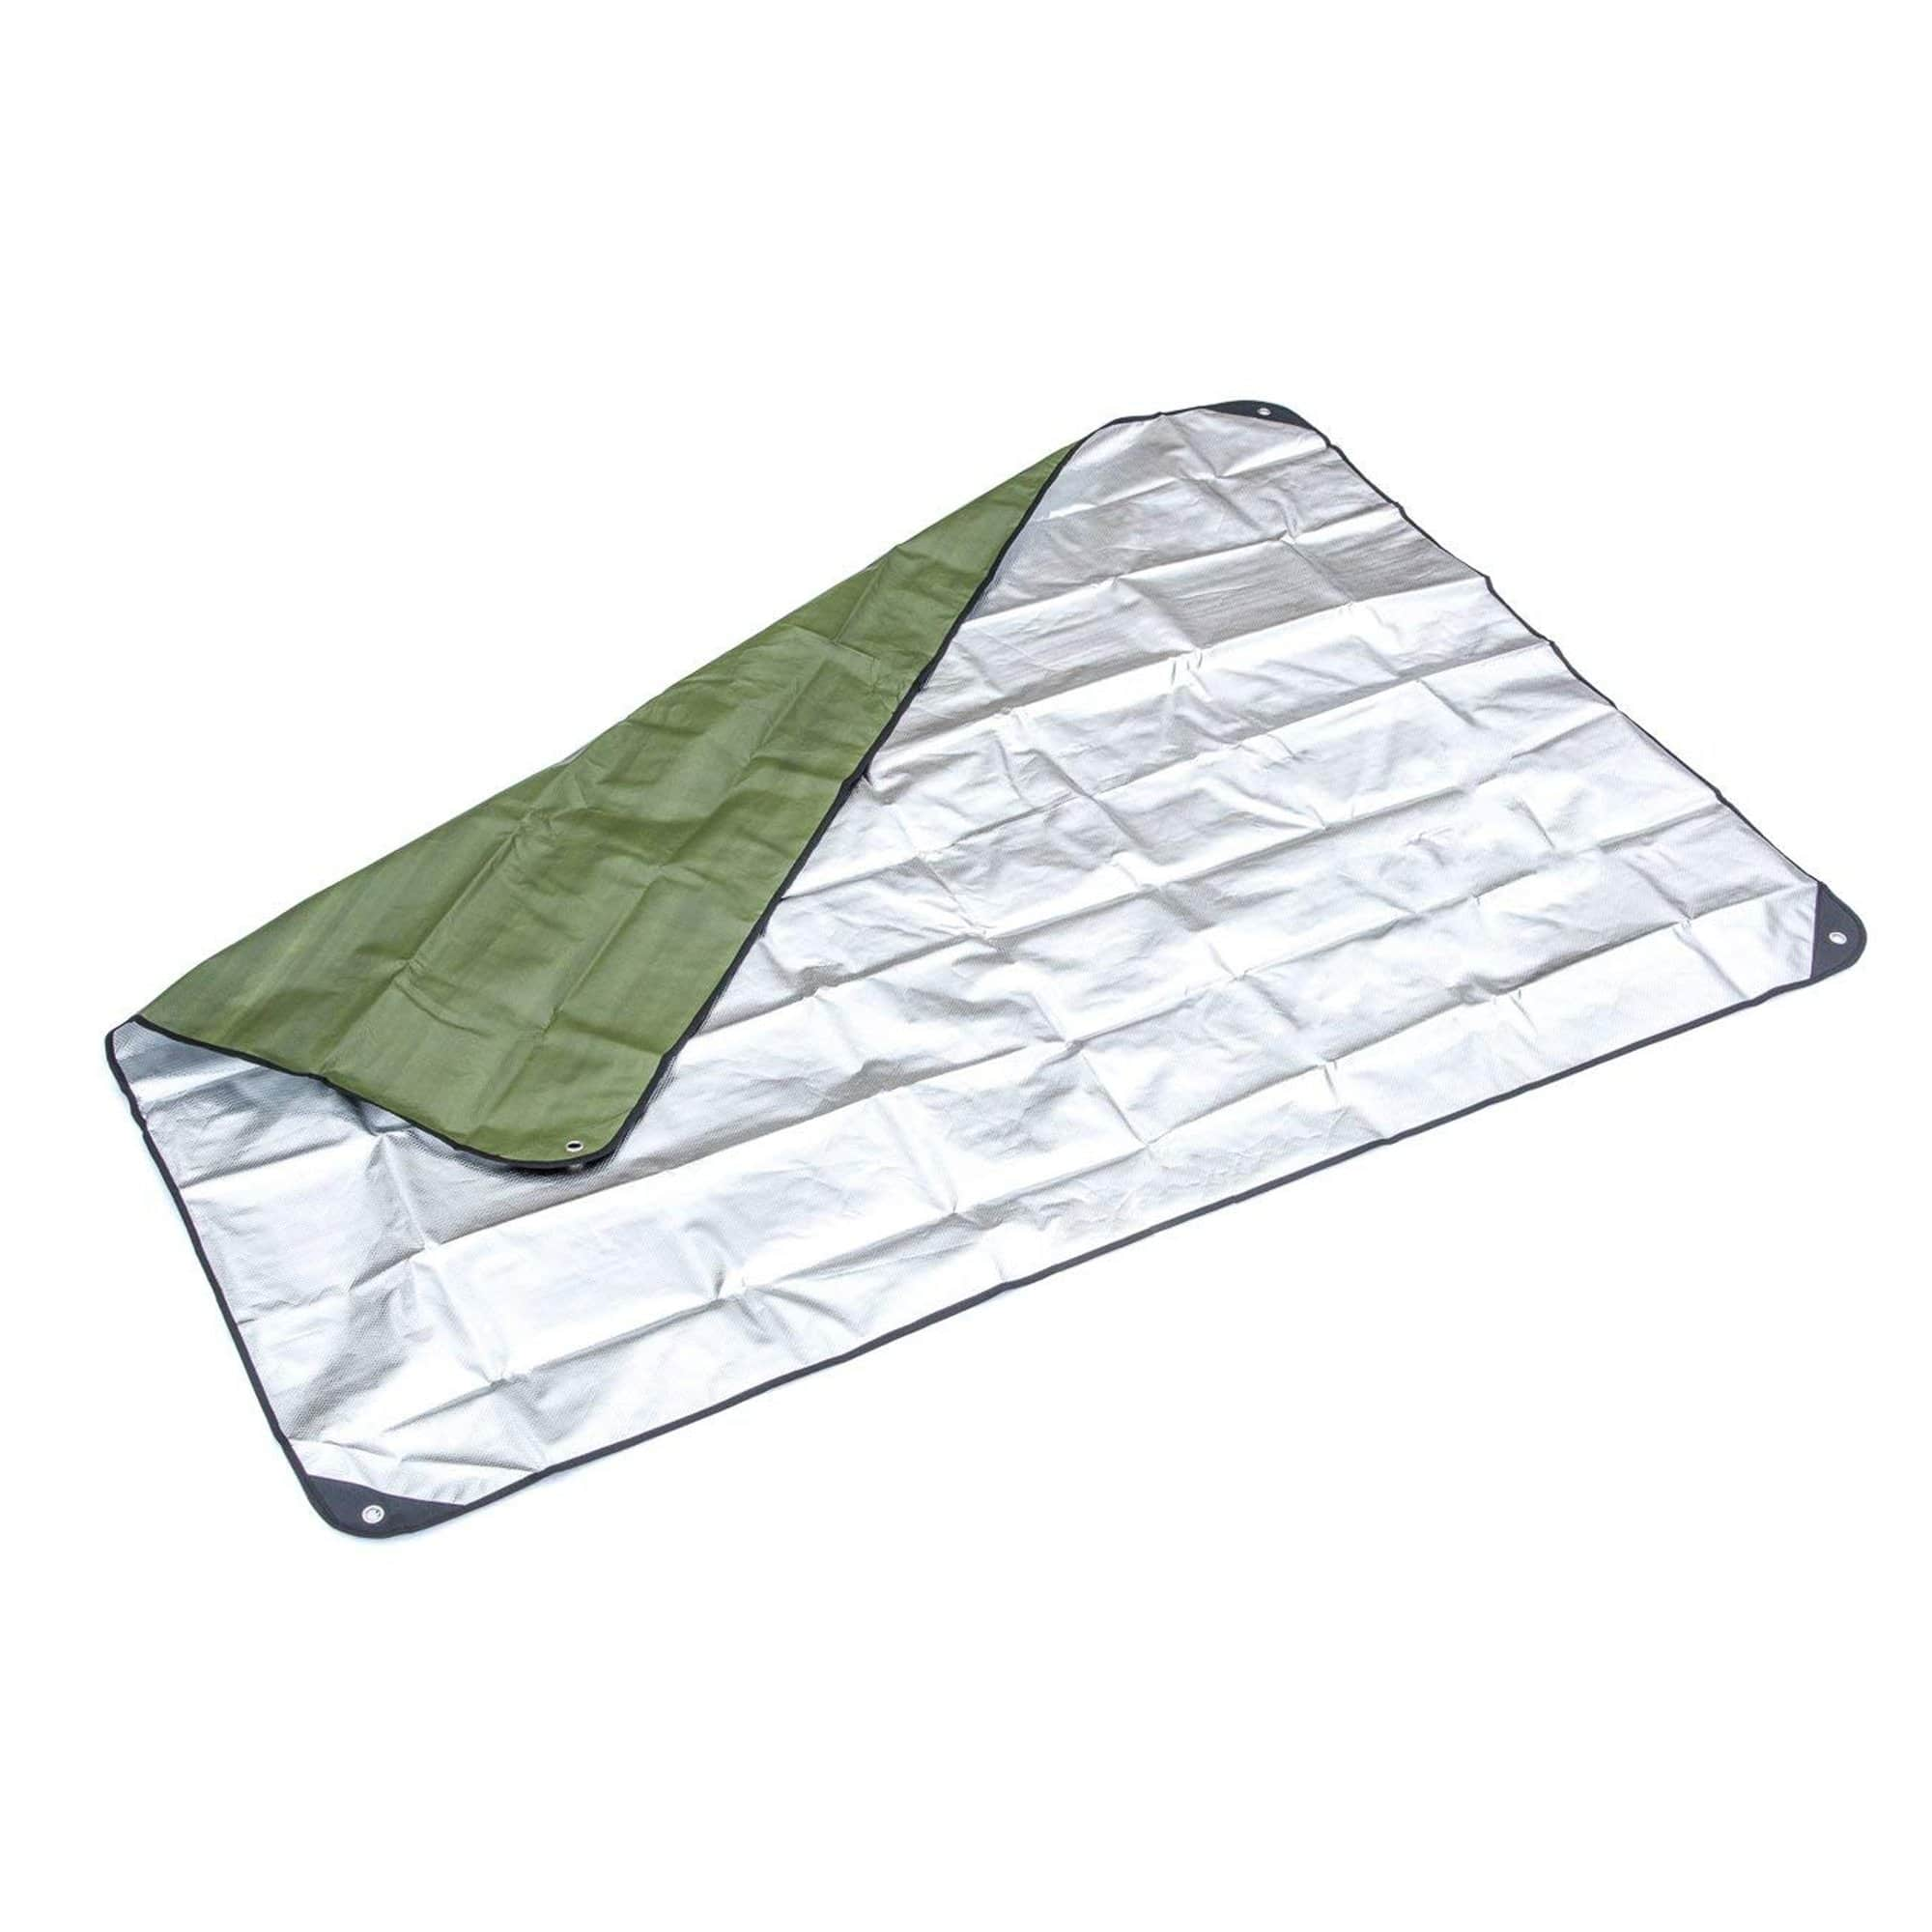 Green Double-sided Thermal Reflective Blanket opened interior